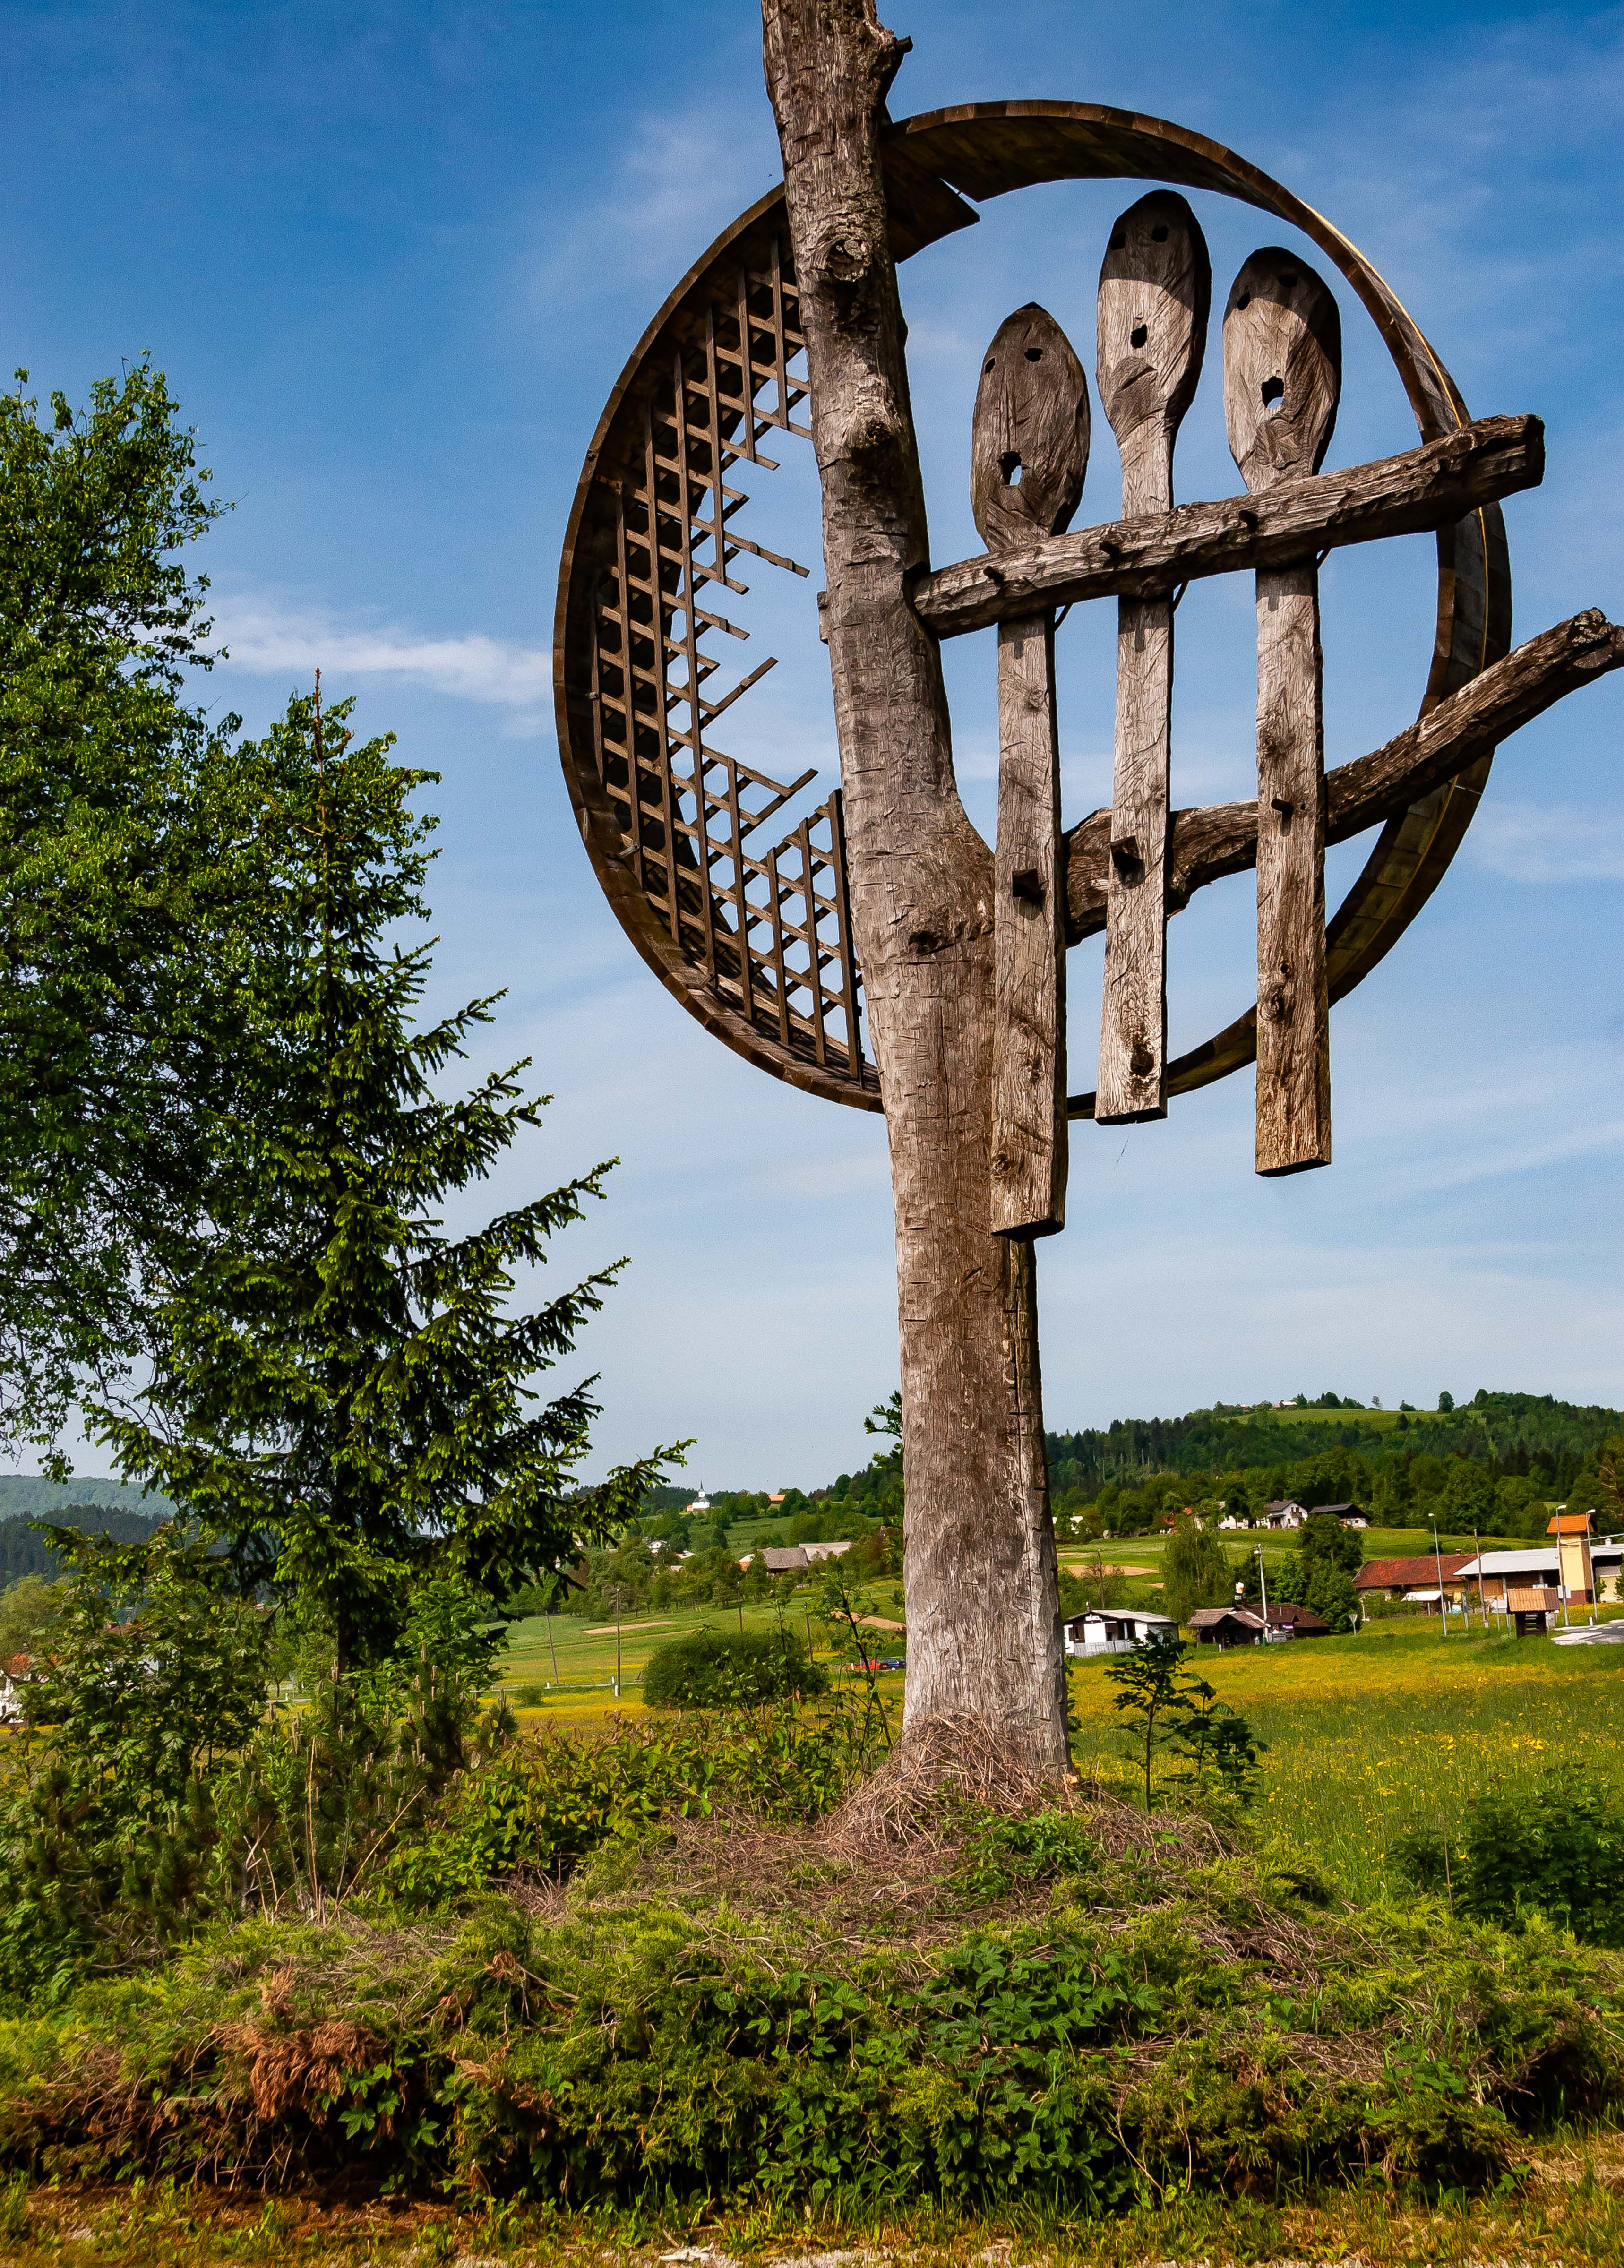 Slovenia, Ribnica Prov, Spoon Sign, 2006, IMG 7189